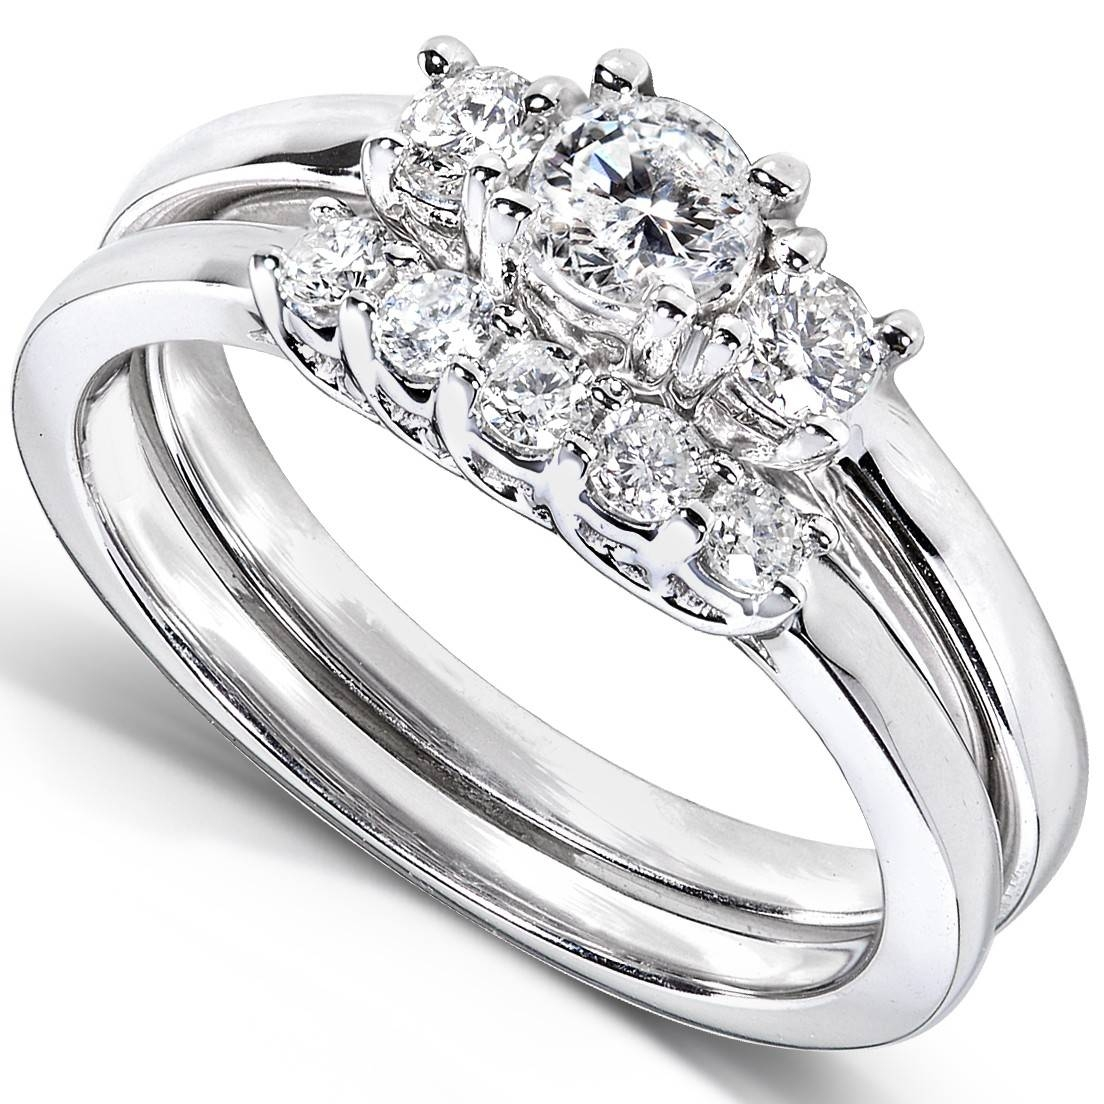 Wedding Diamond Rings | Wedding, Promise, Diamond, Engagement Inside 4 Diamond Wedding Bands (View 14 of 15)